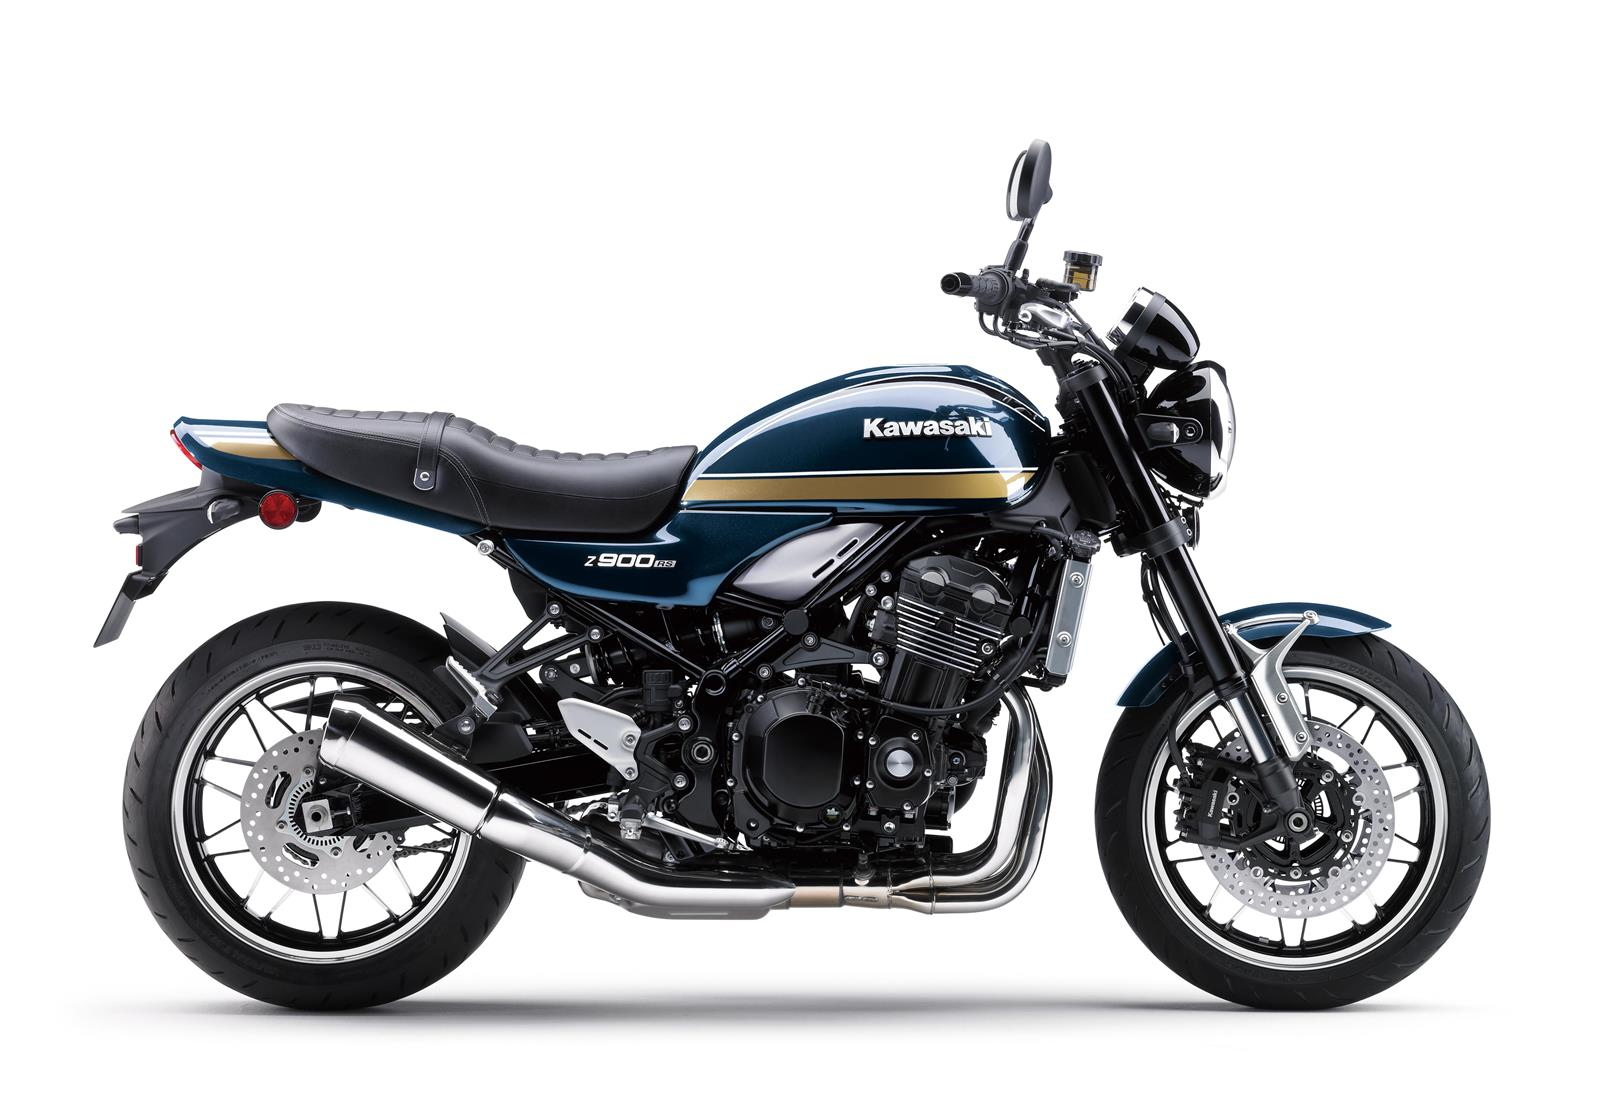 Z900 RS 2022